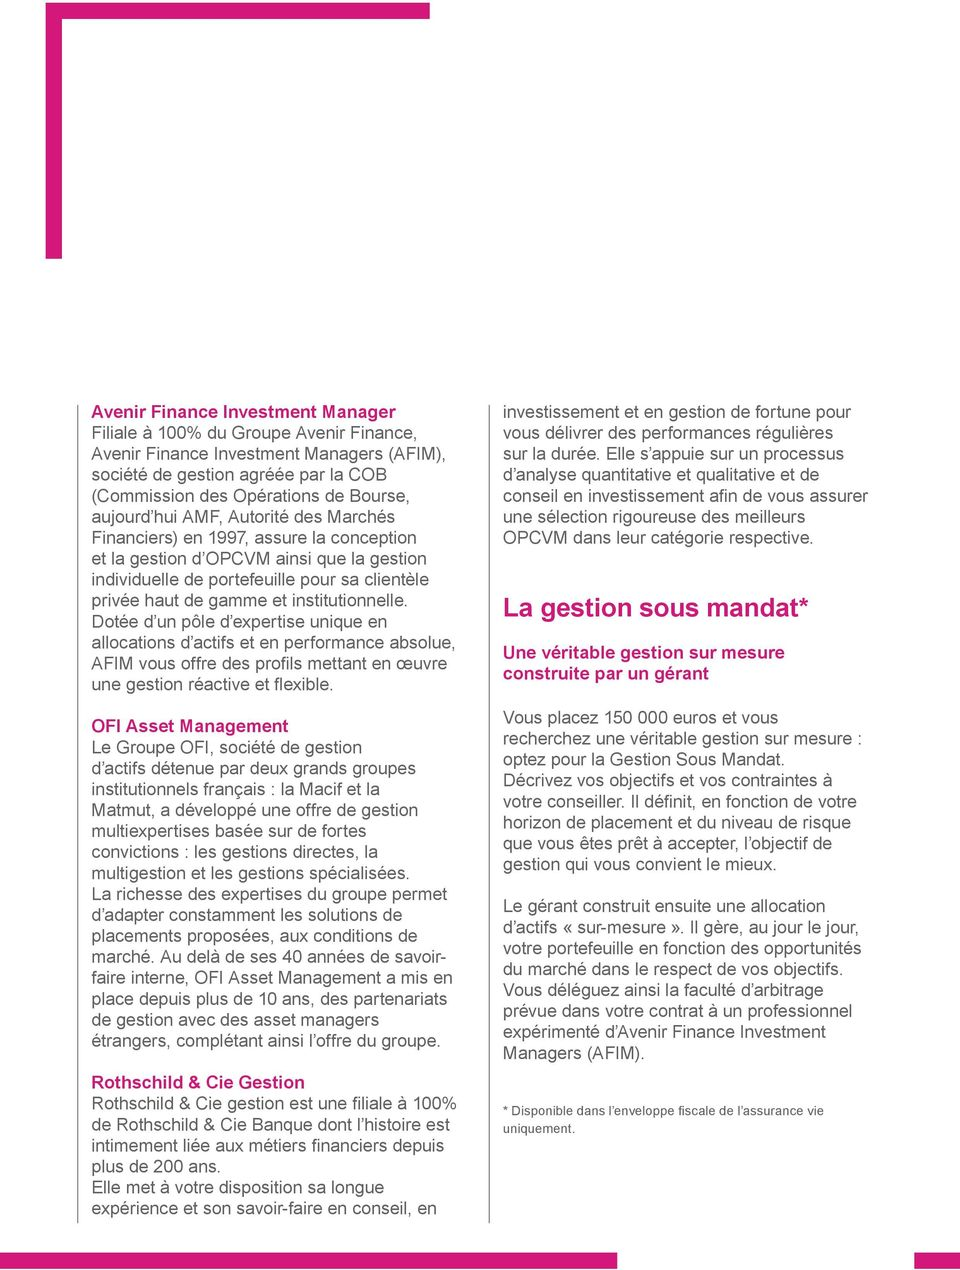 institutionnelle. Dotée d un pôle d expertise unique en allocations d actifs et en performance absolue, AFIM vous offre des profils mettant en œuvre une gestion réactive et flexible.